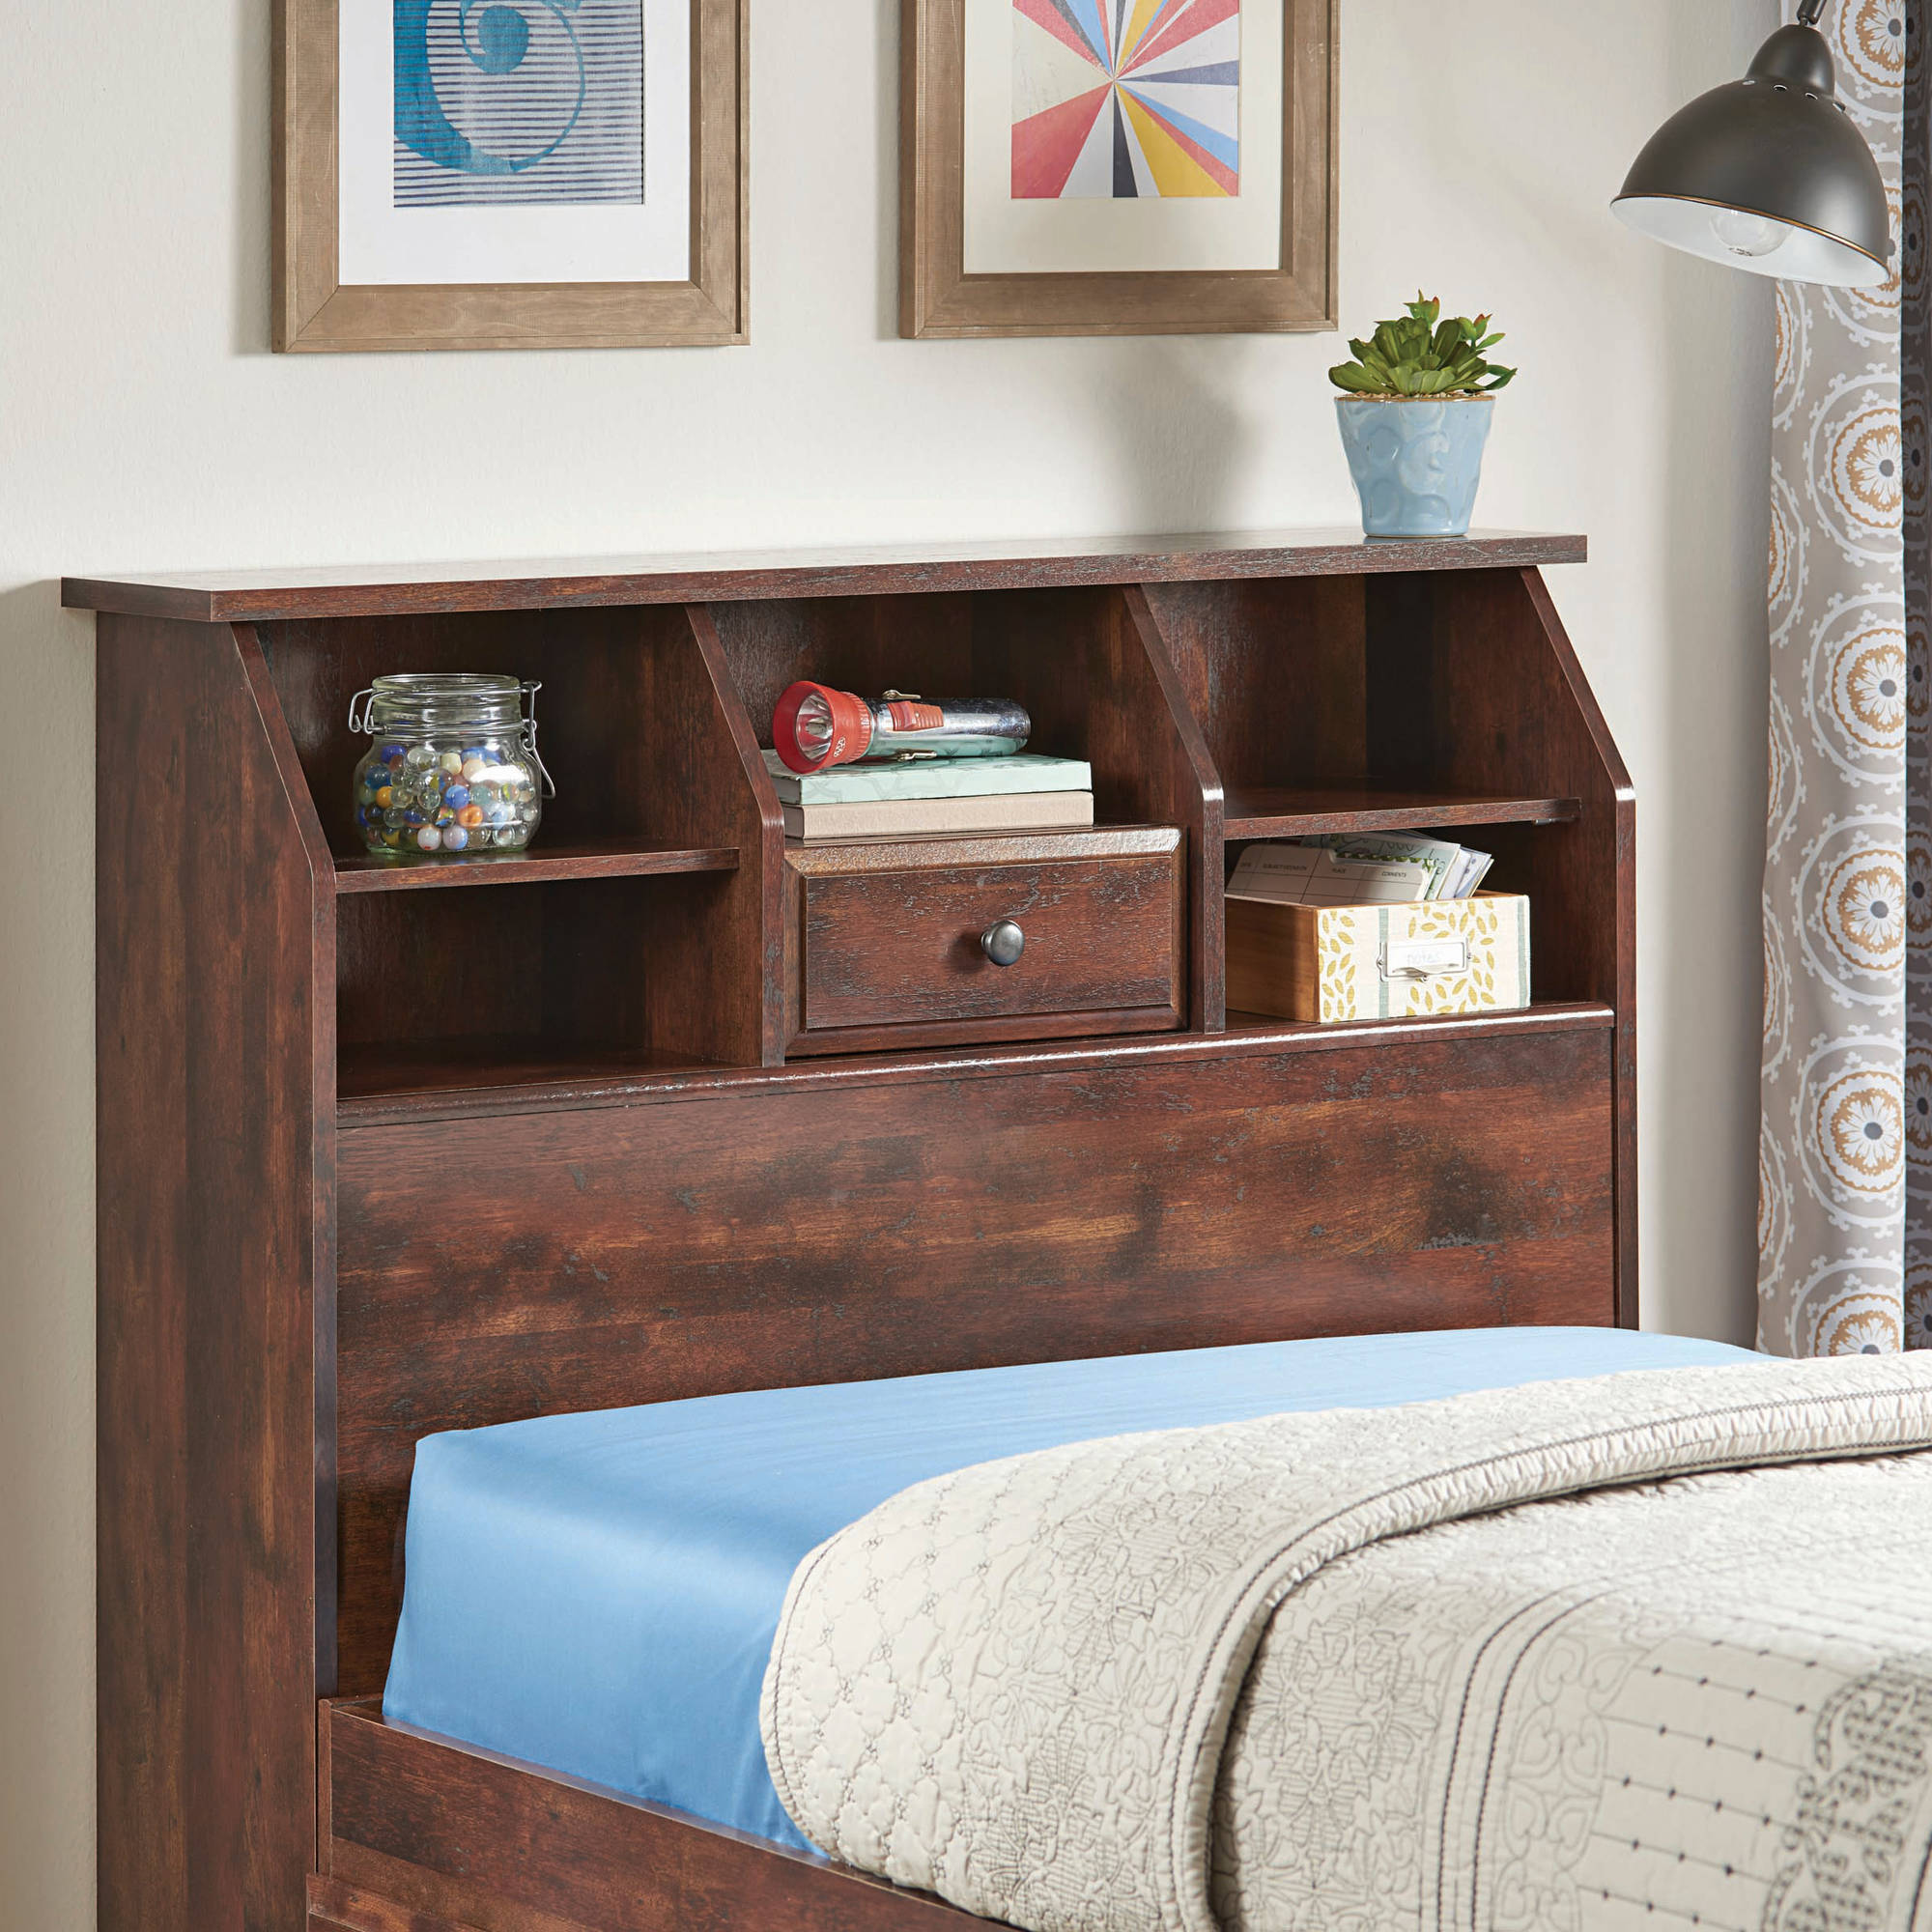 Better Homes and Gardens Leighton Twin Bookcase Headboard, Rustic Cherry Finish